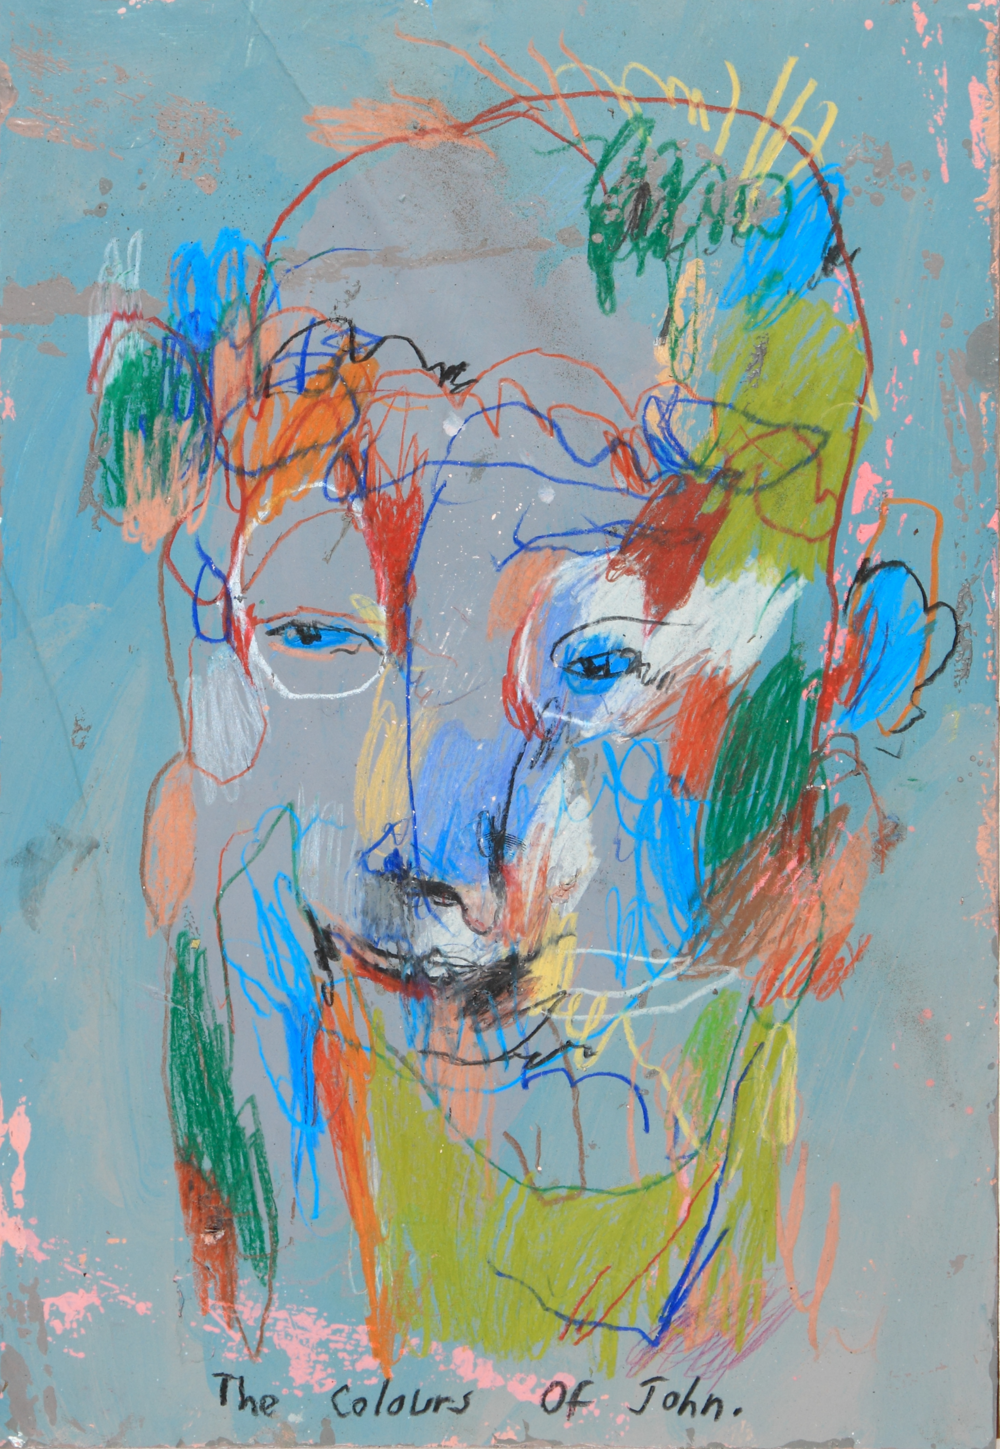 The Colours Of John, 2014 [private collection Queens, NY] Acrylic on paper 11 1/2 x 8 1/4 in.